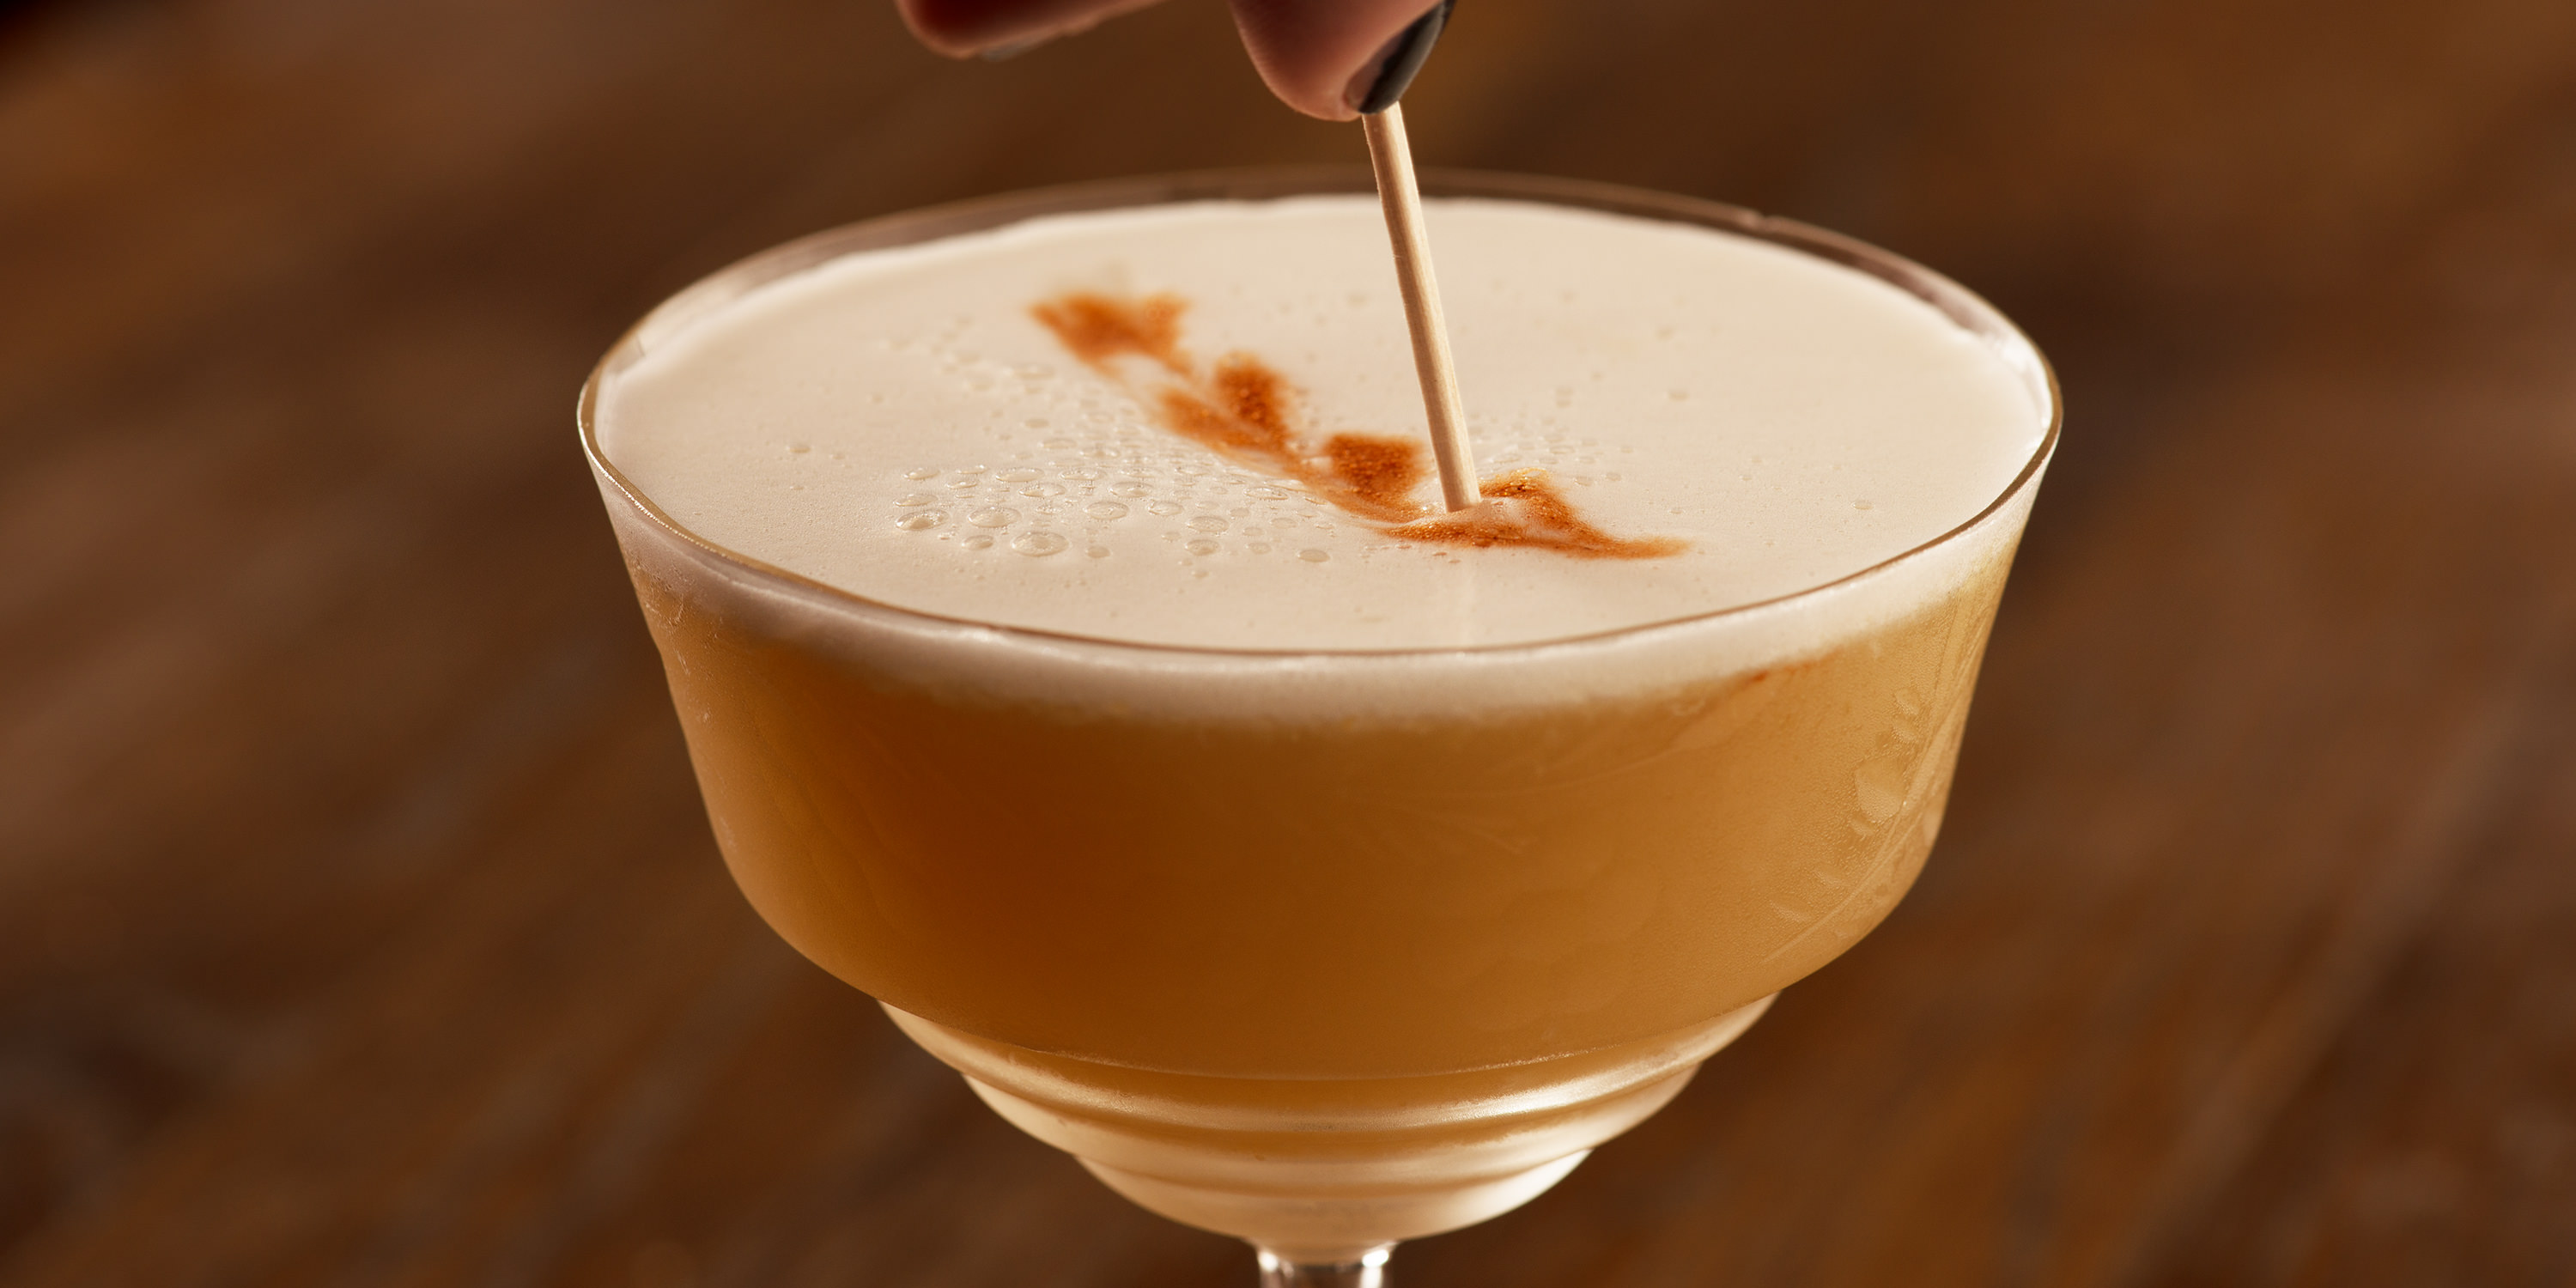 national whiskey sour the classic whiskey sour a classic whiskey sour ...